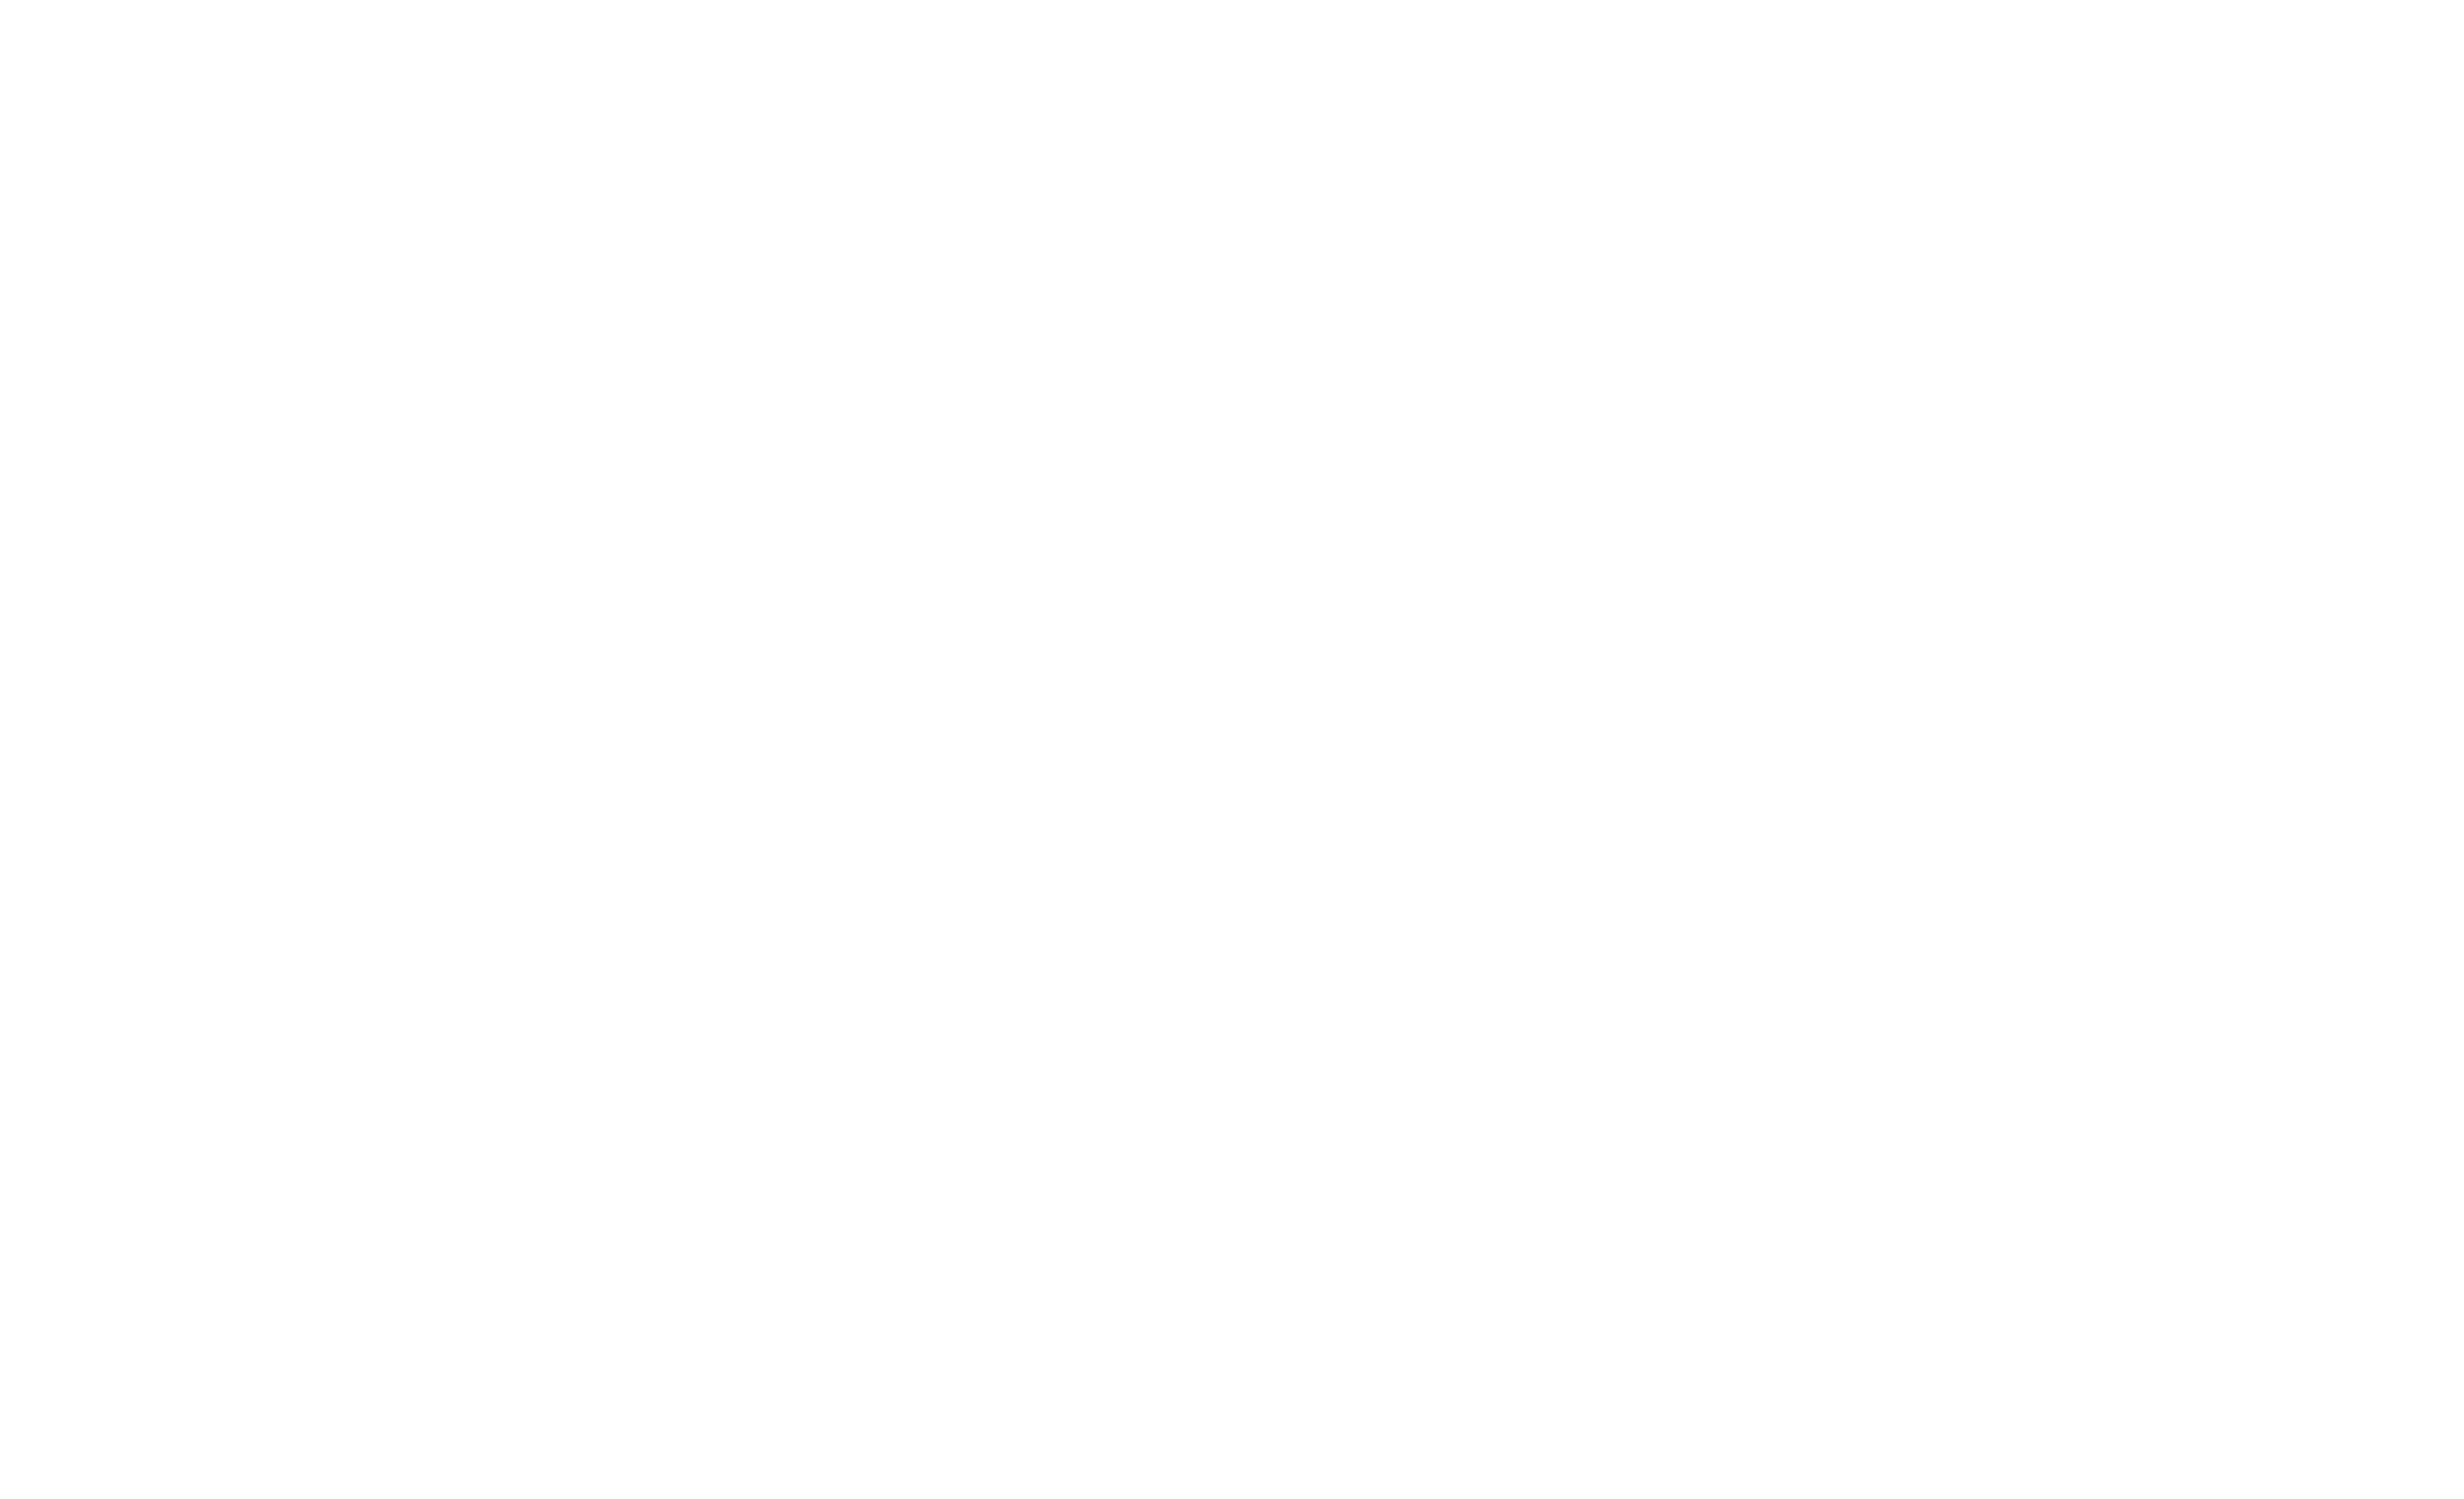 Columbia South Carolina Property Home Inspections Footer Logo